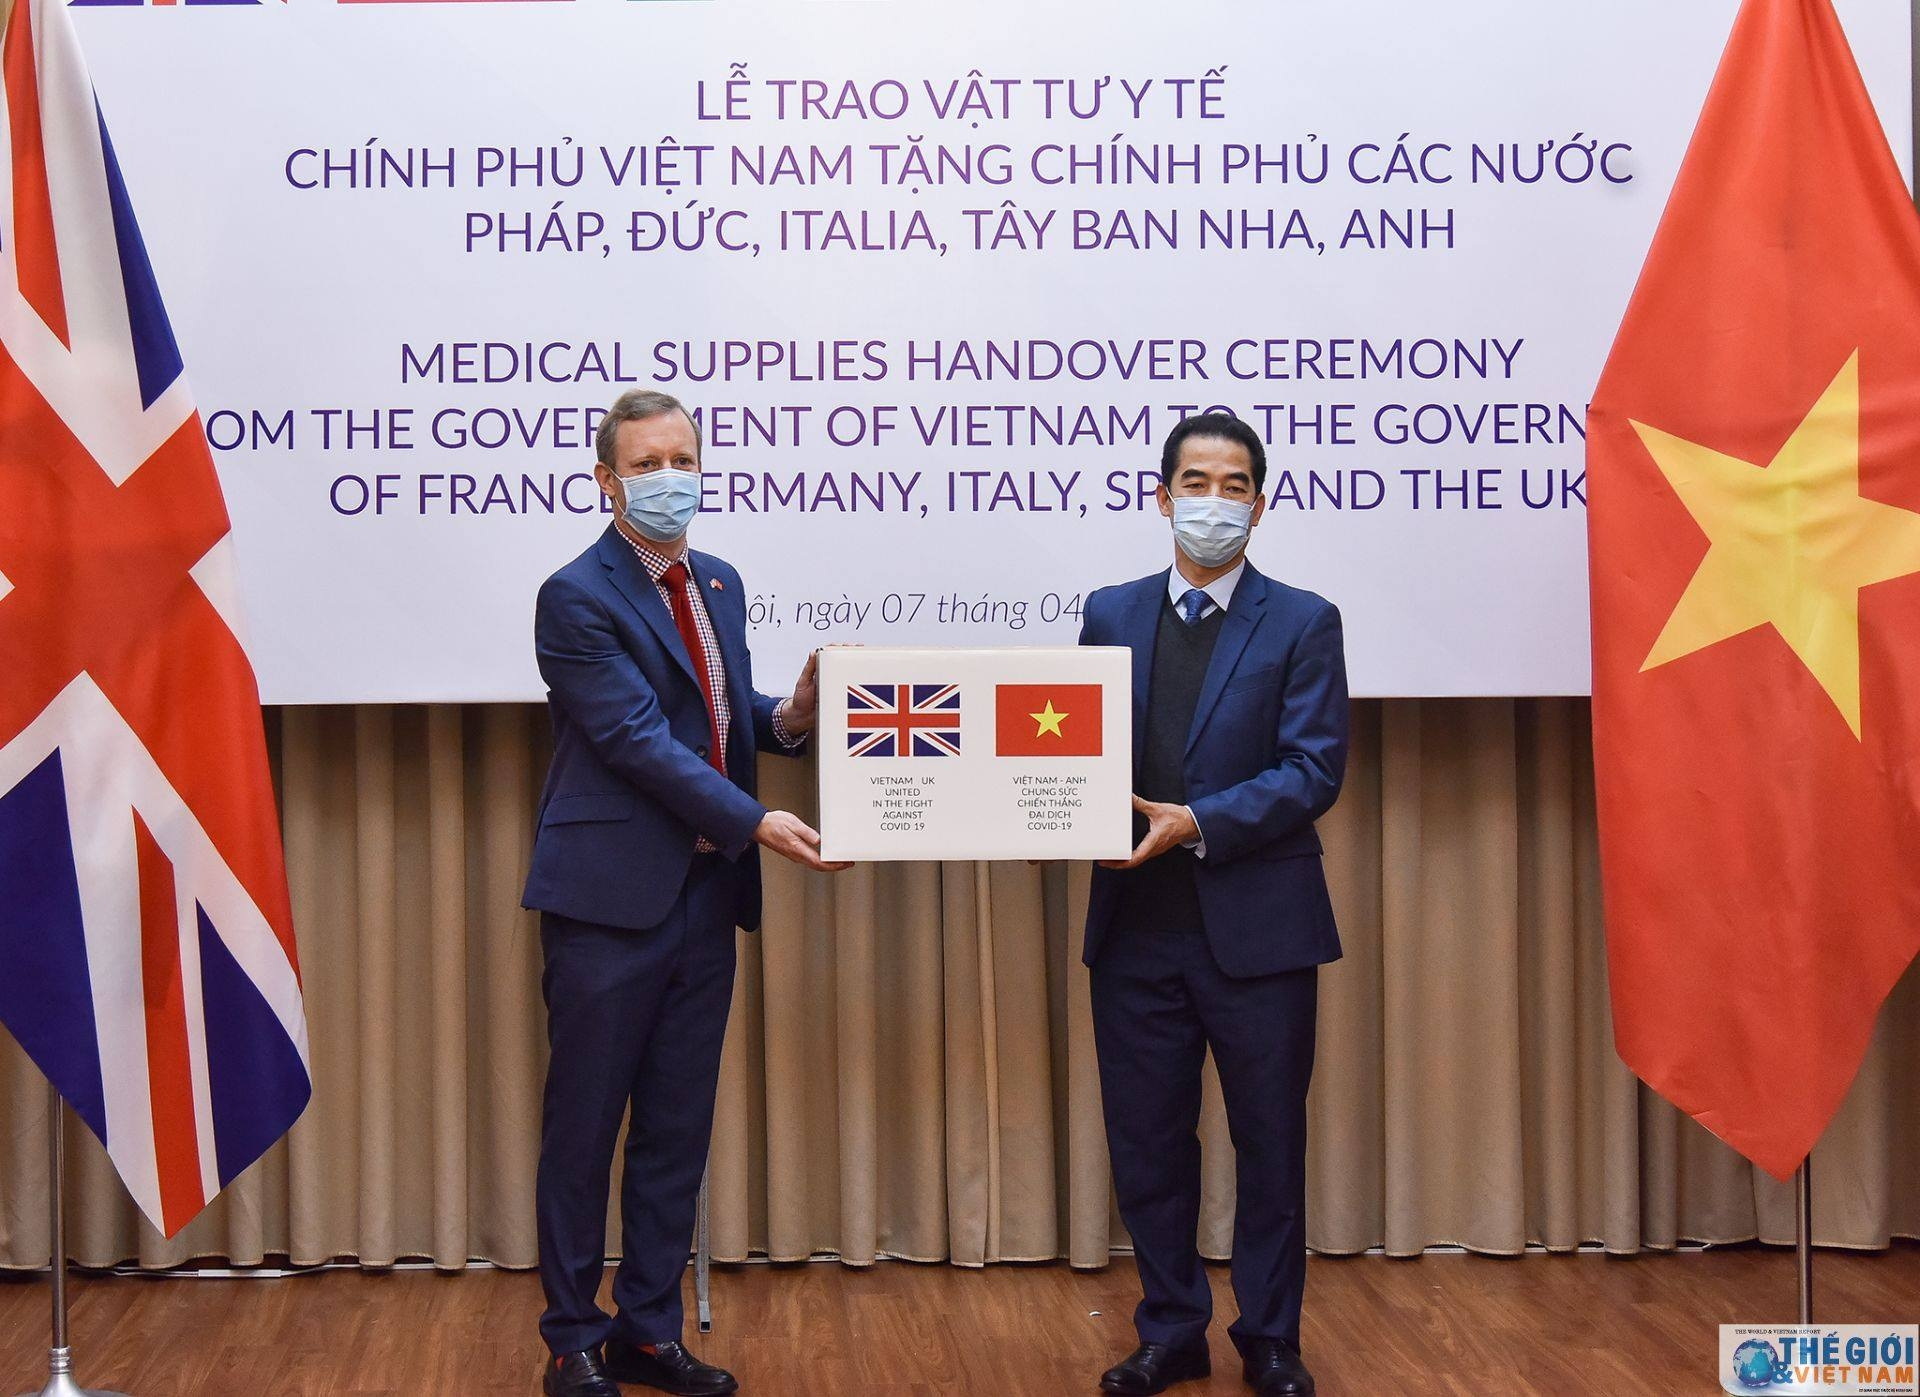 vietnam gifts 550000 face masks to eu countries in coronavirus fight